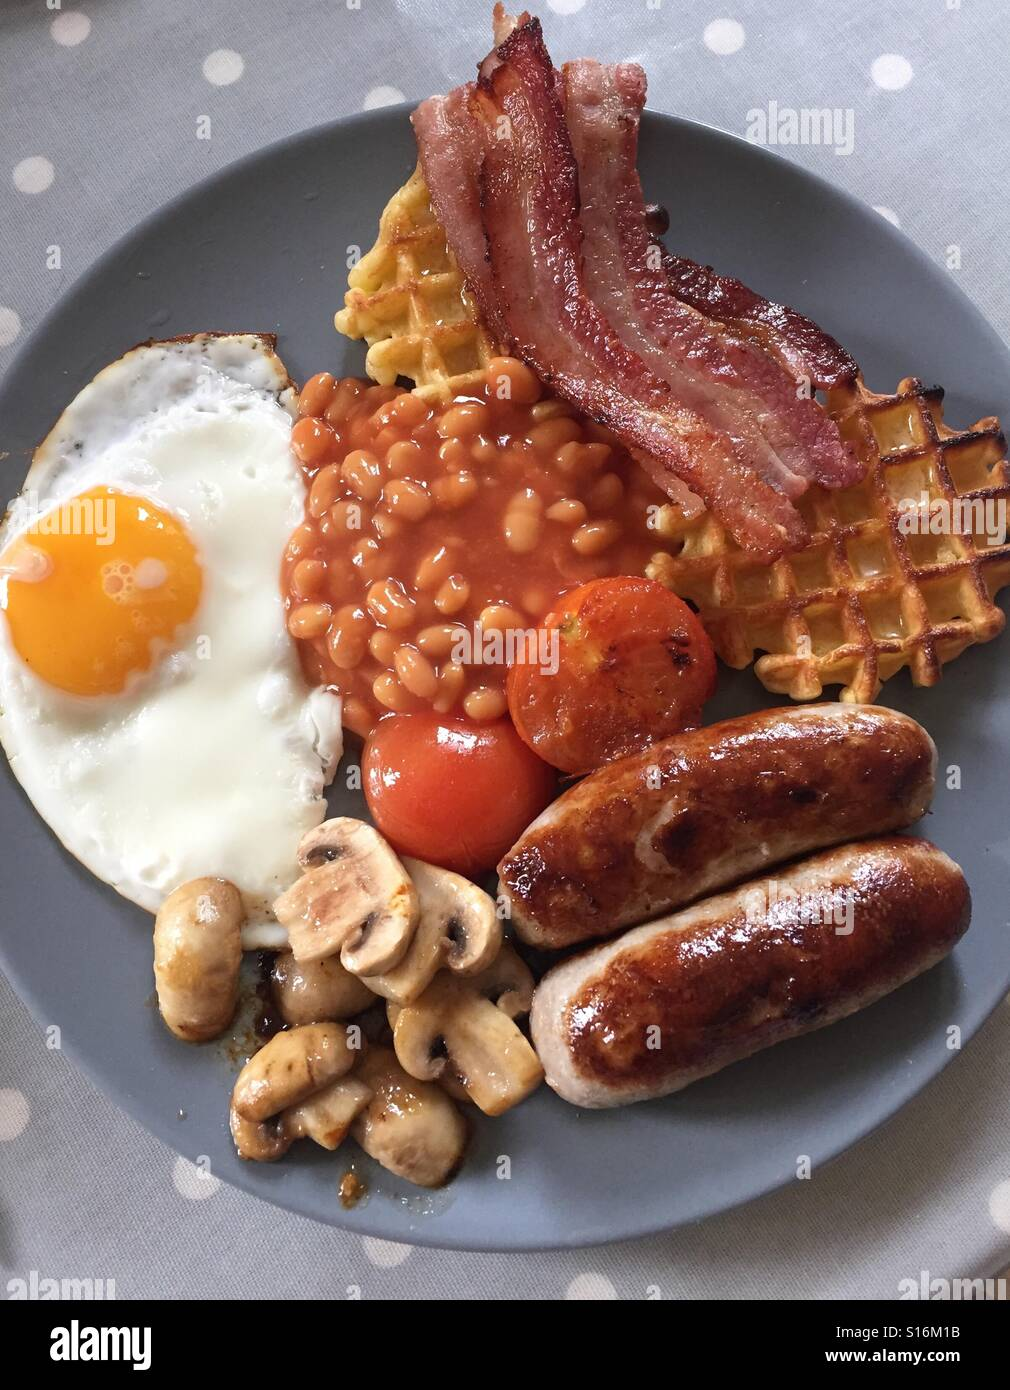 Full English Breakfast. Bacon, sausages, baked beans, tomatoes, mushrooms, egg. - Stock Image